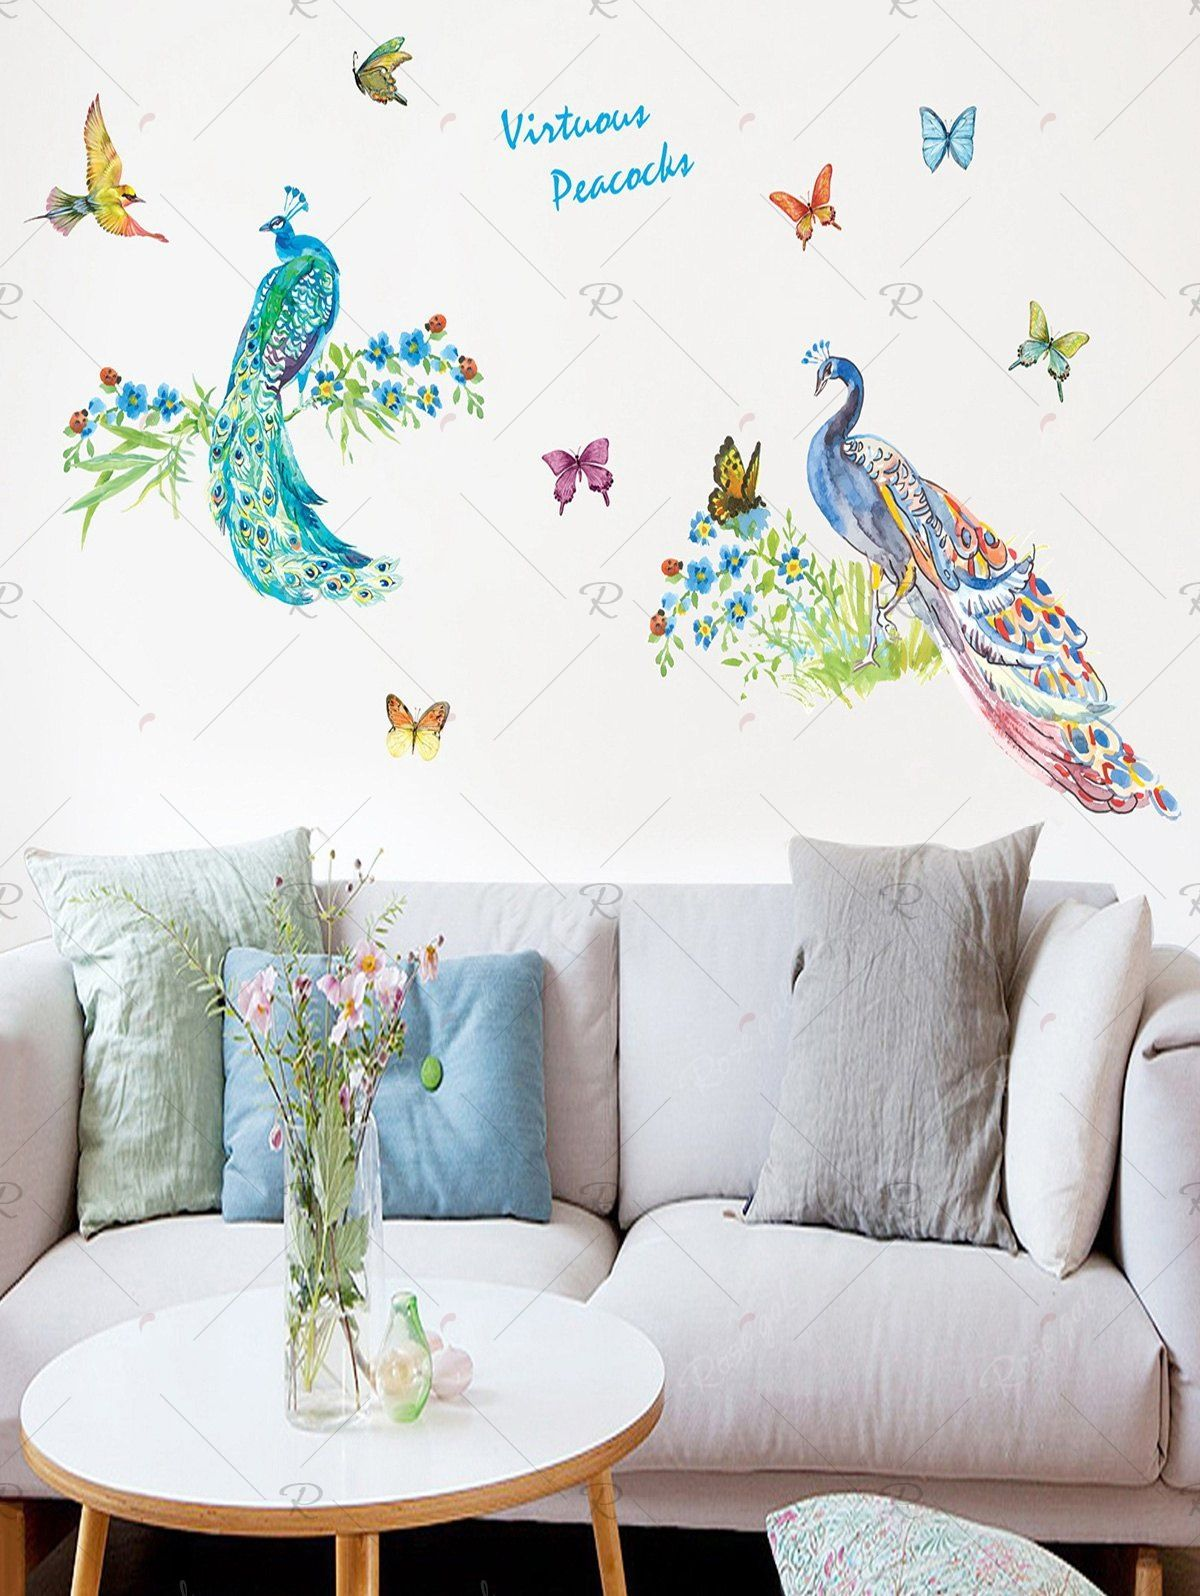 Butterfly And Peacock Removable Wall Art Stickers Sticker Wall Art Removable Wall Art Wall Decor Stickers